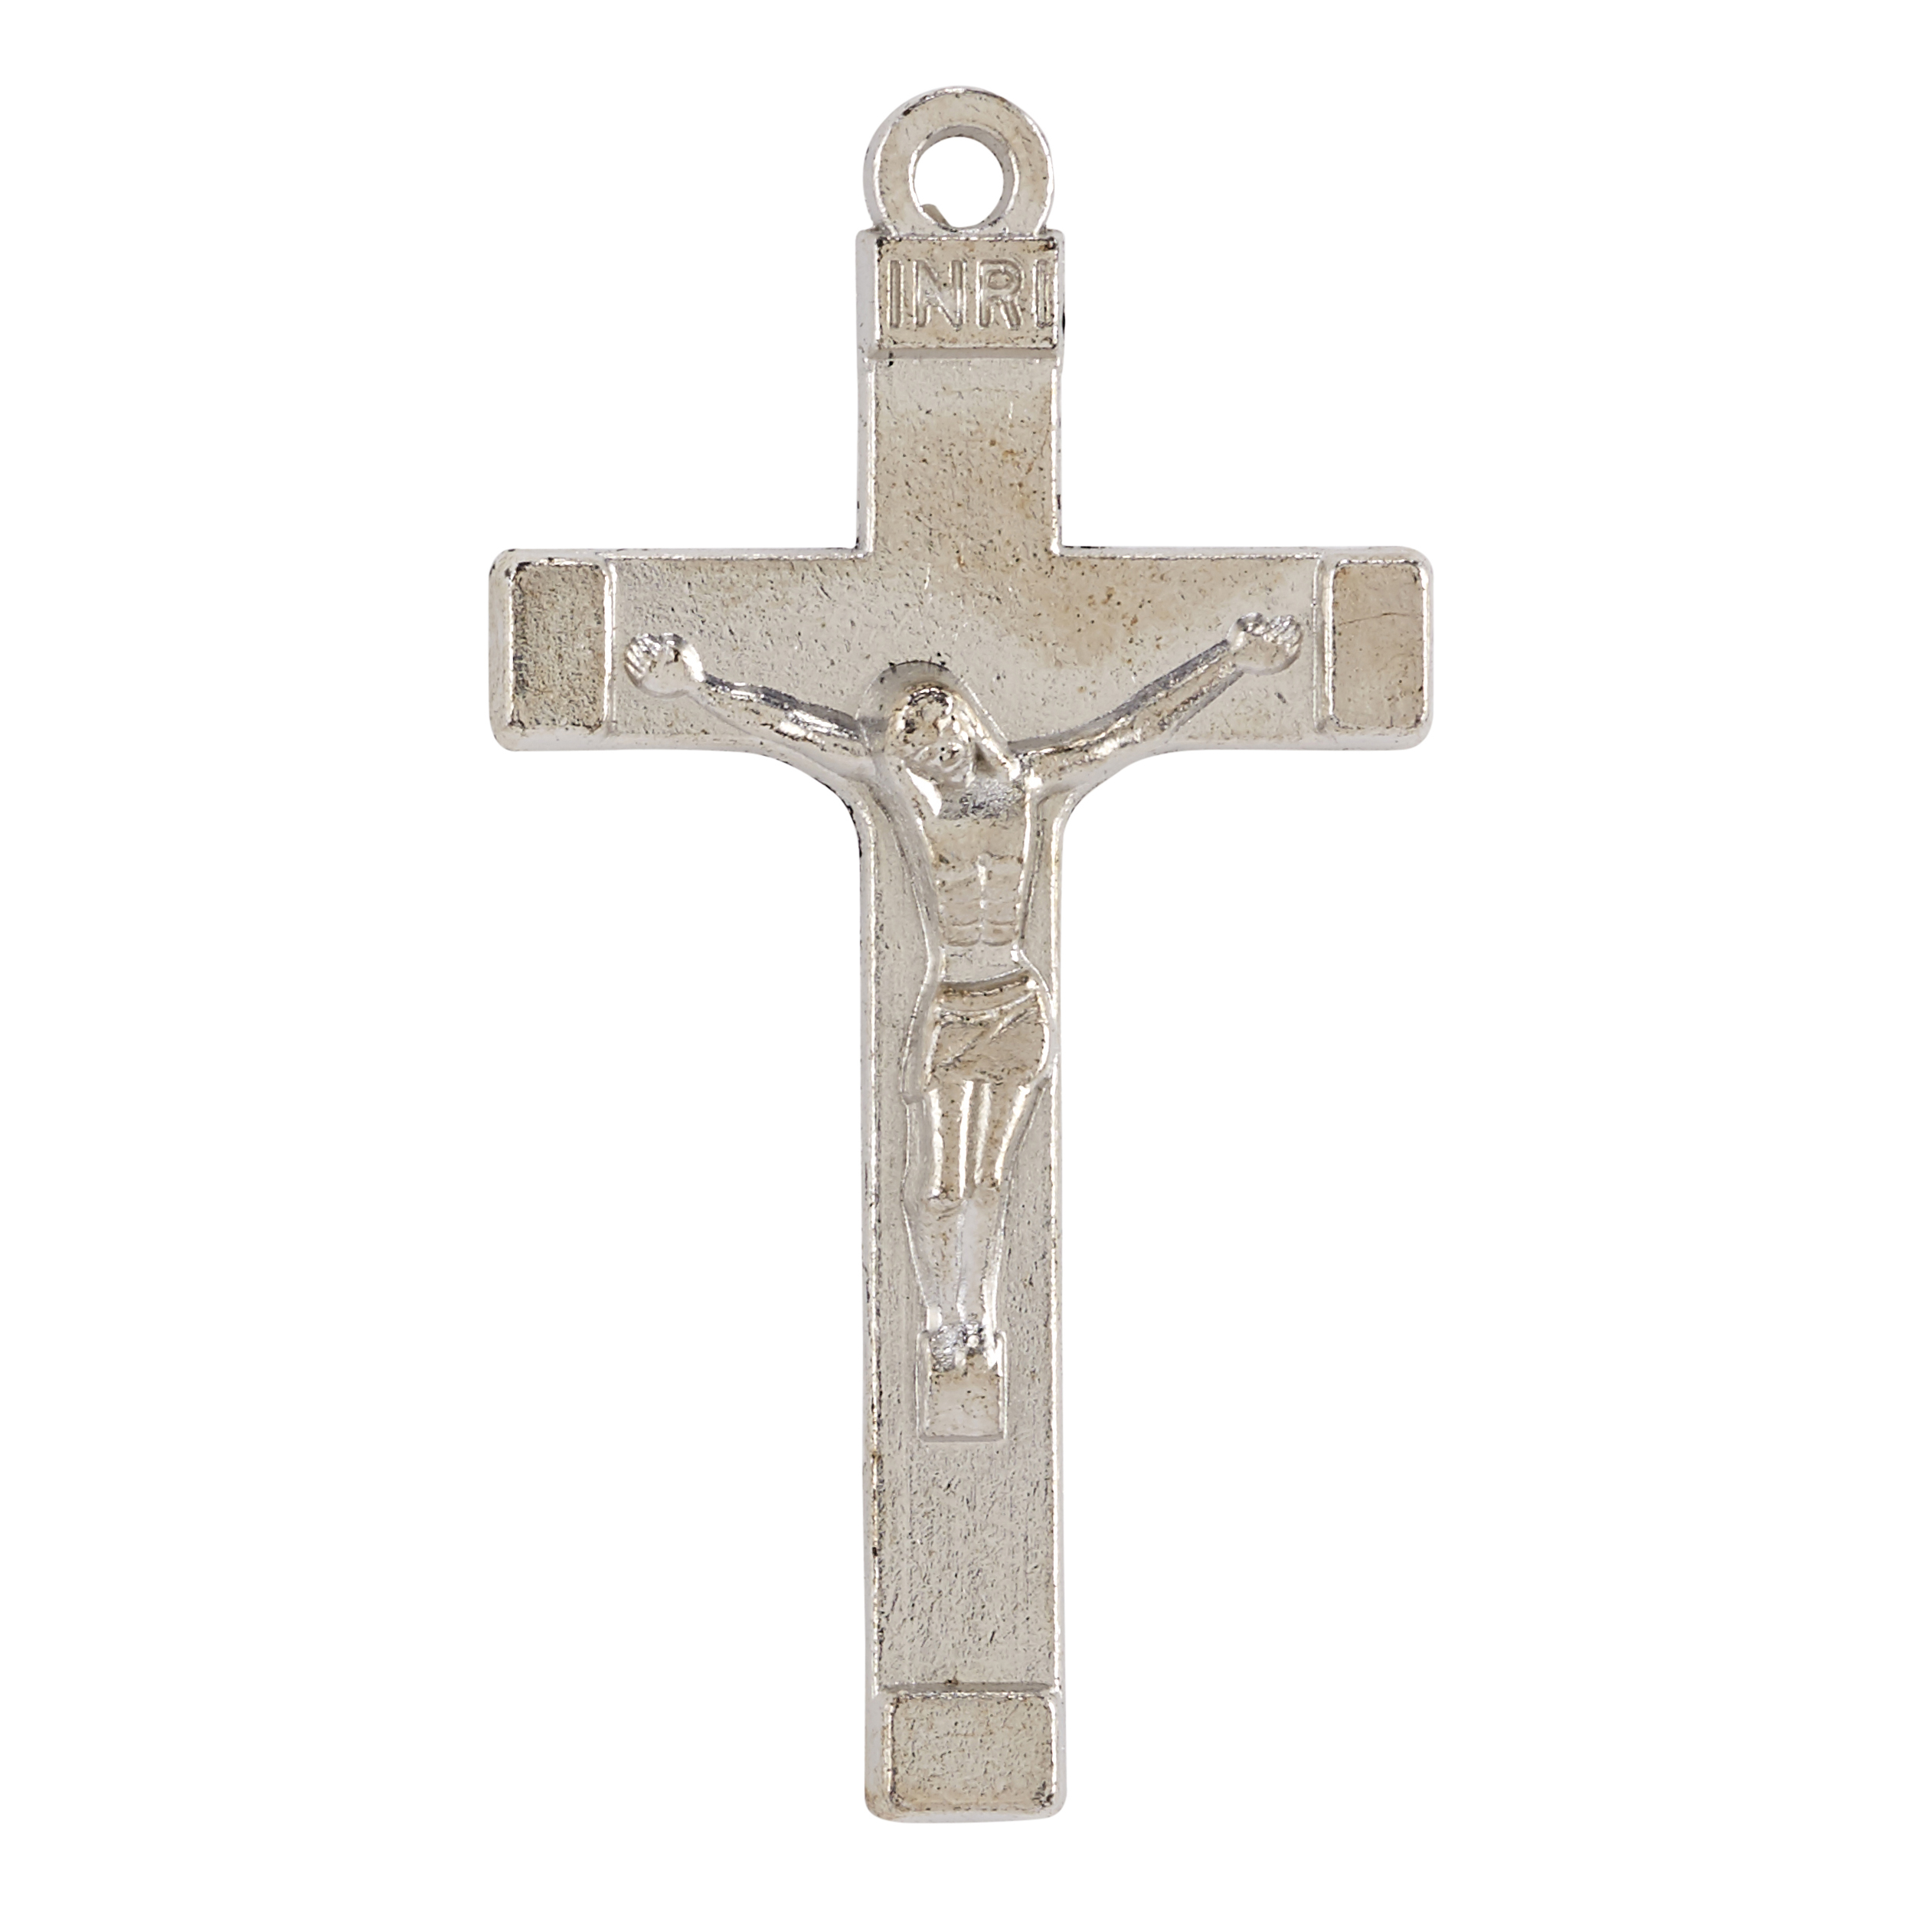 Three pack of Crucifixes buy 1 get 1 FREE - Limit one per order!